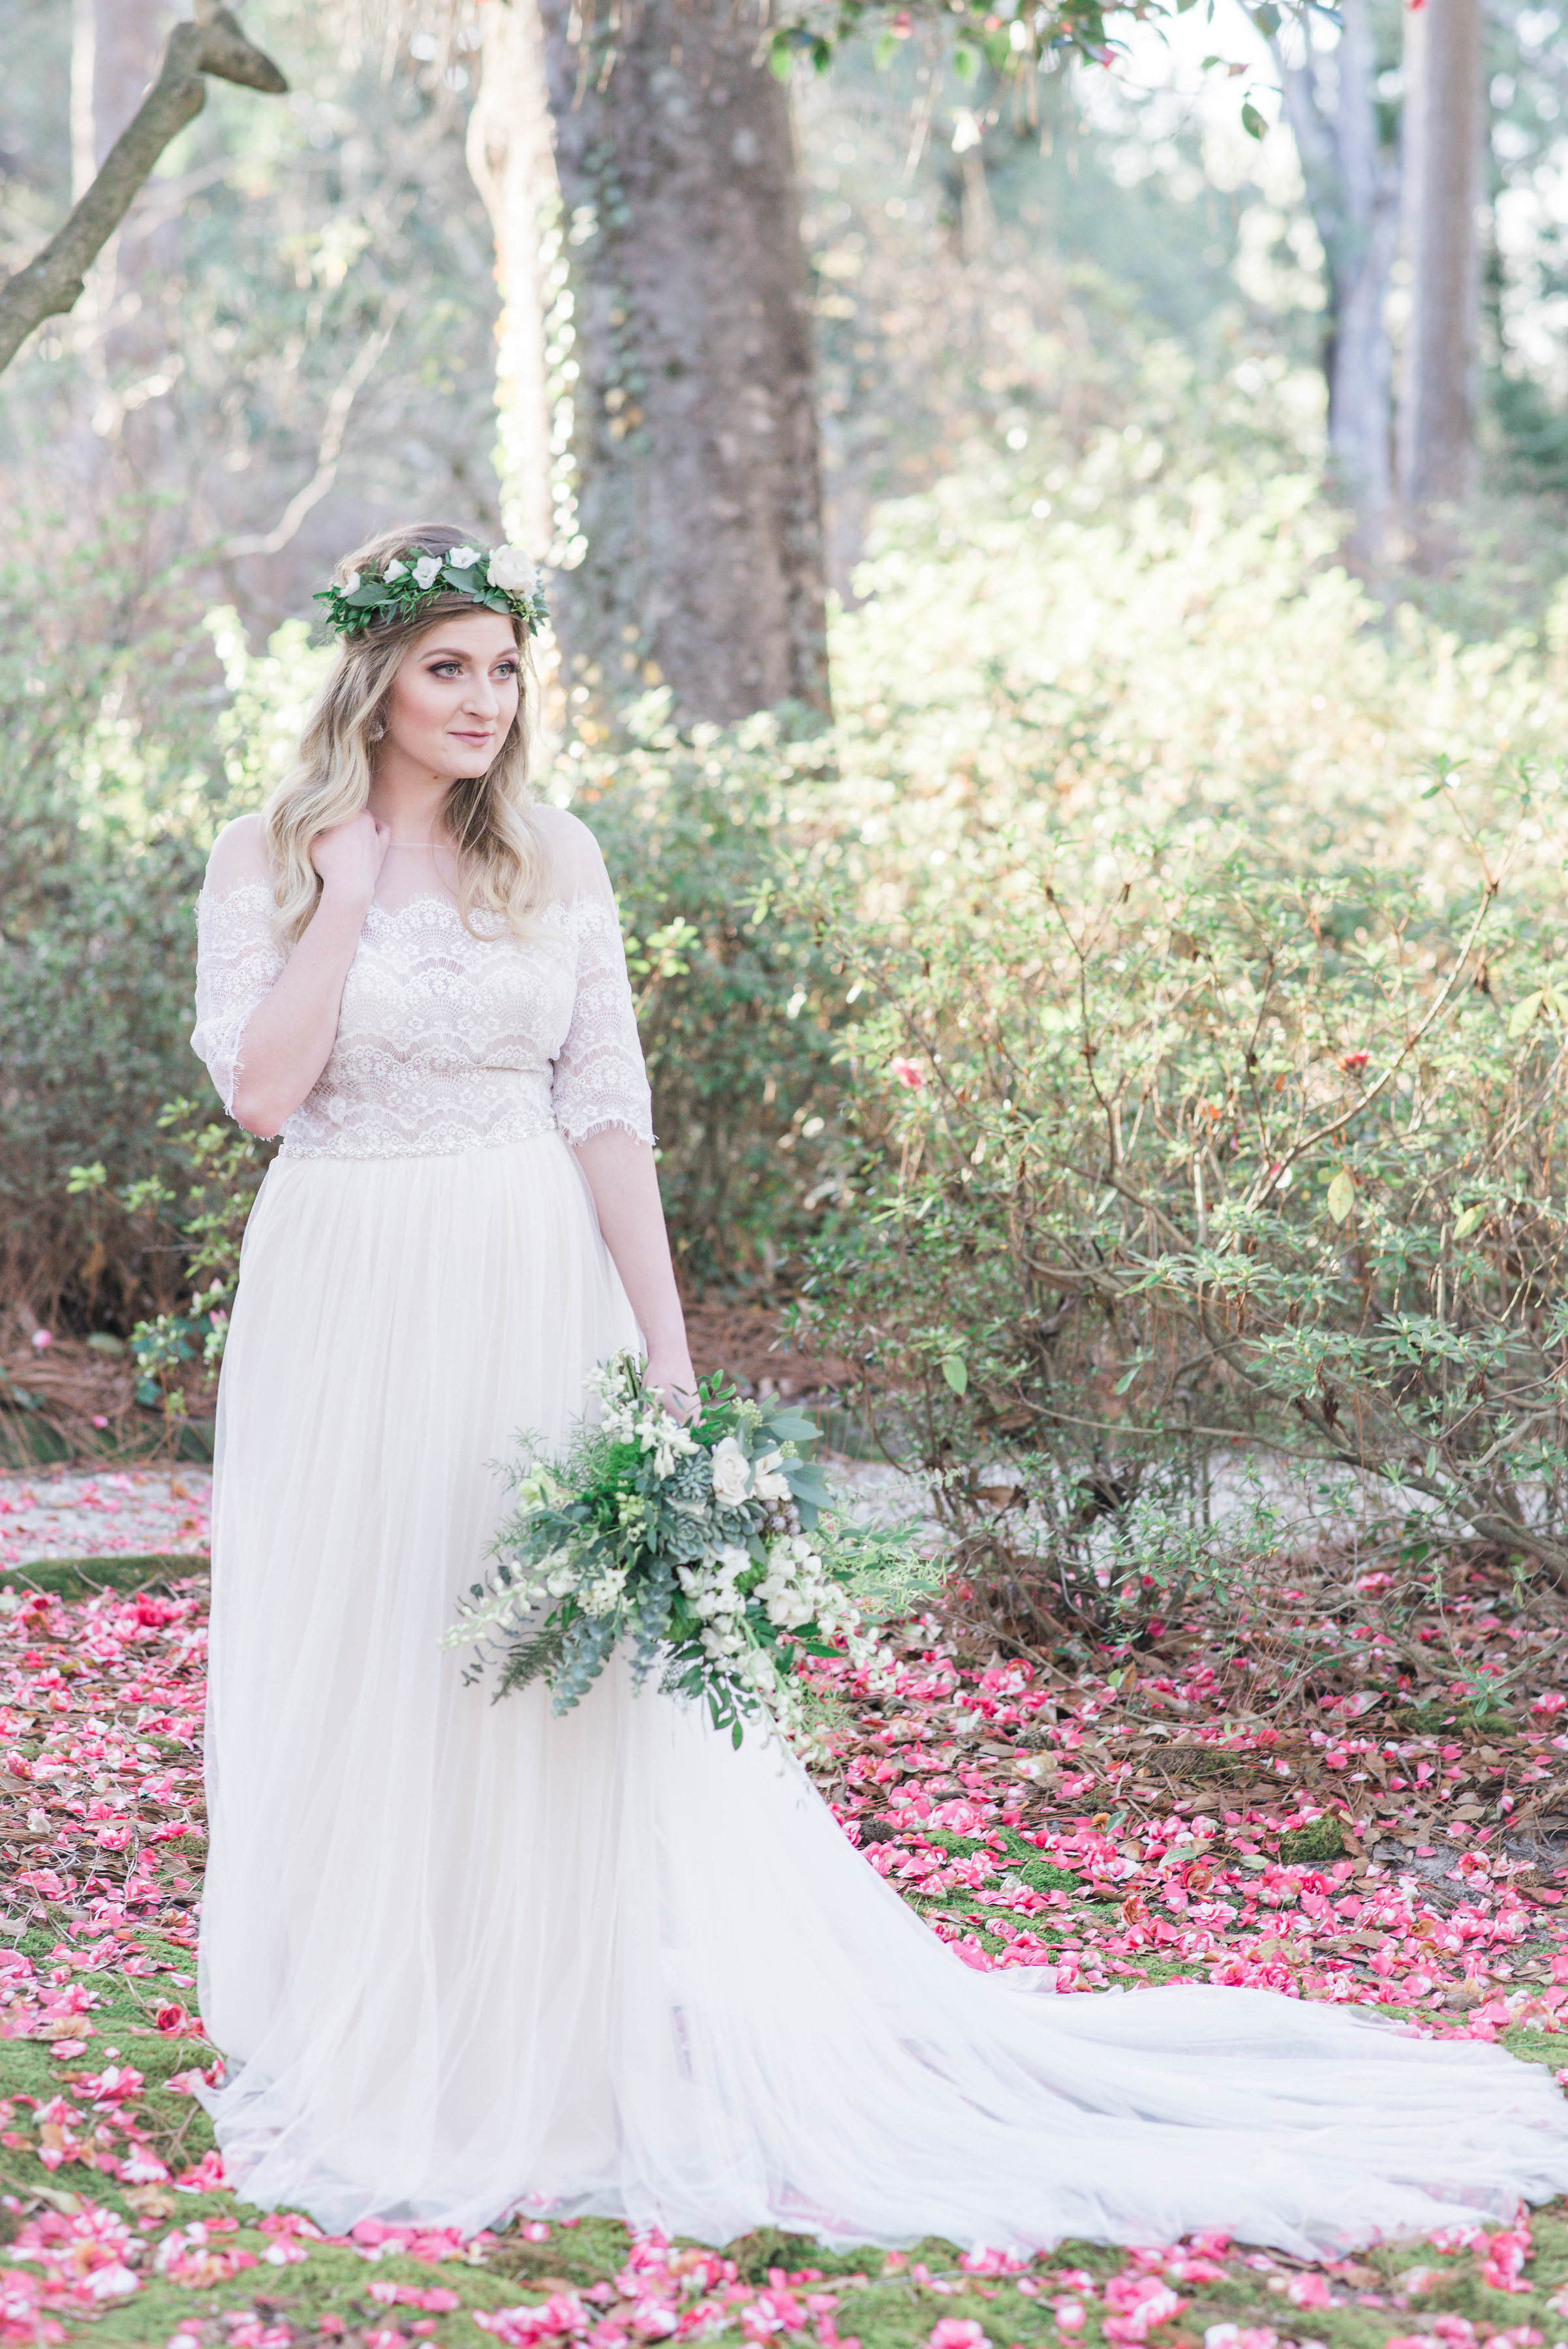 Bride with Bouquet in Forrest | Ademurelife Fashion Blog